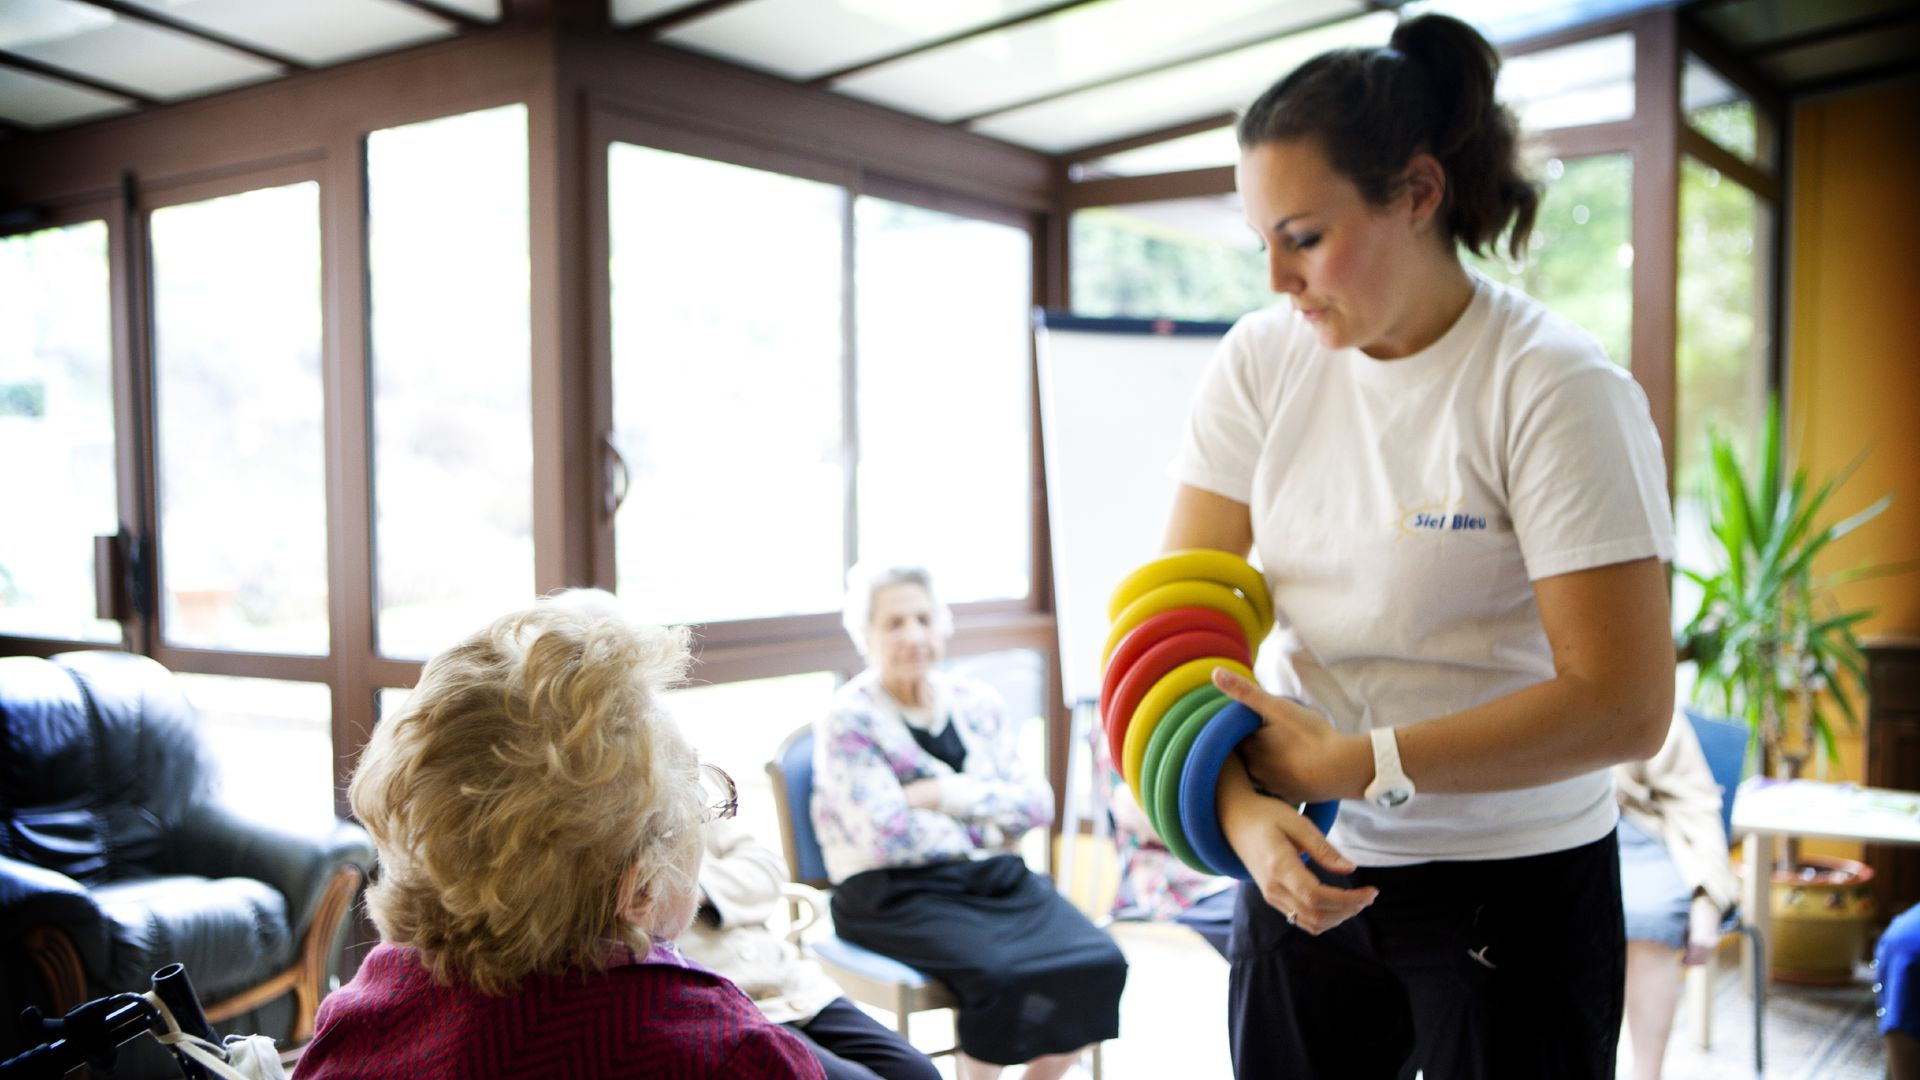 Photo of home for people with Alzheimer's who are participating in gym activities